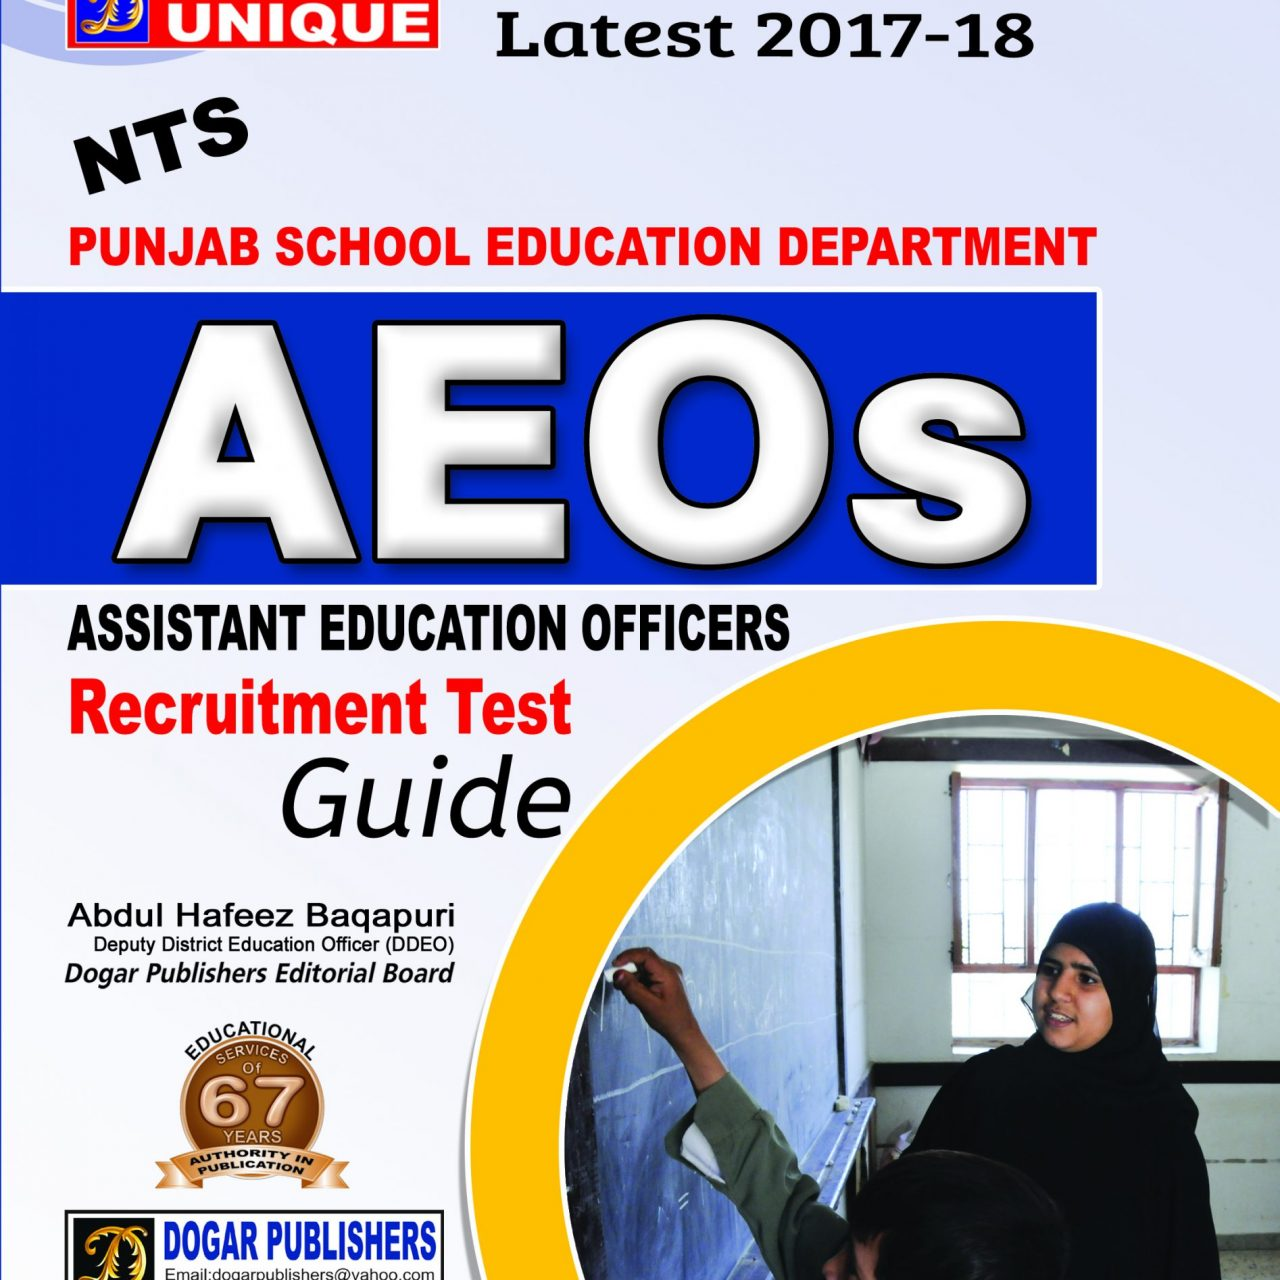 Assistant Education Officers AEOS recruitment Guide